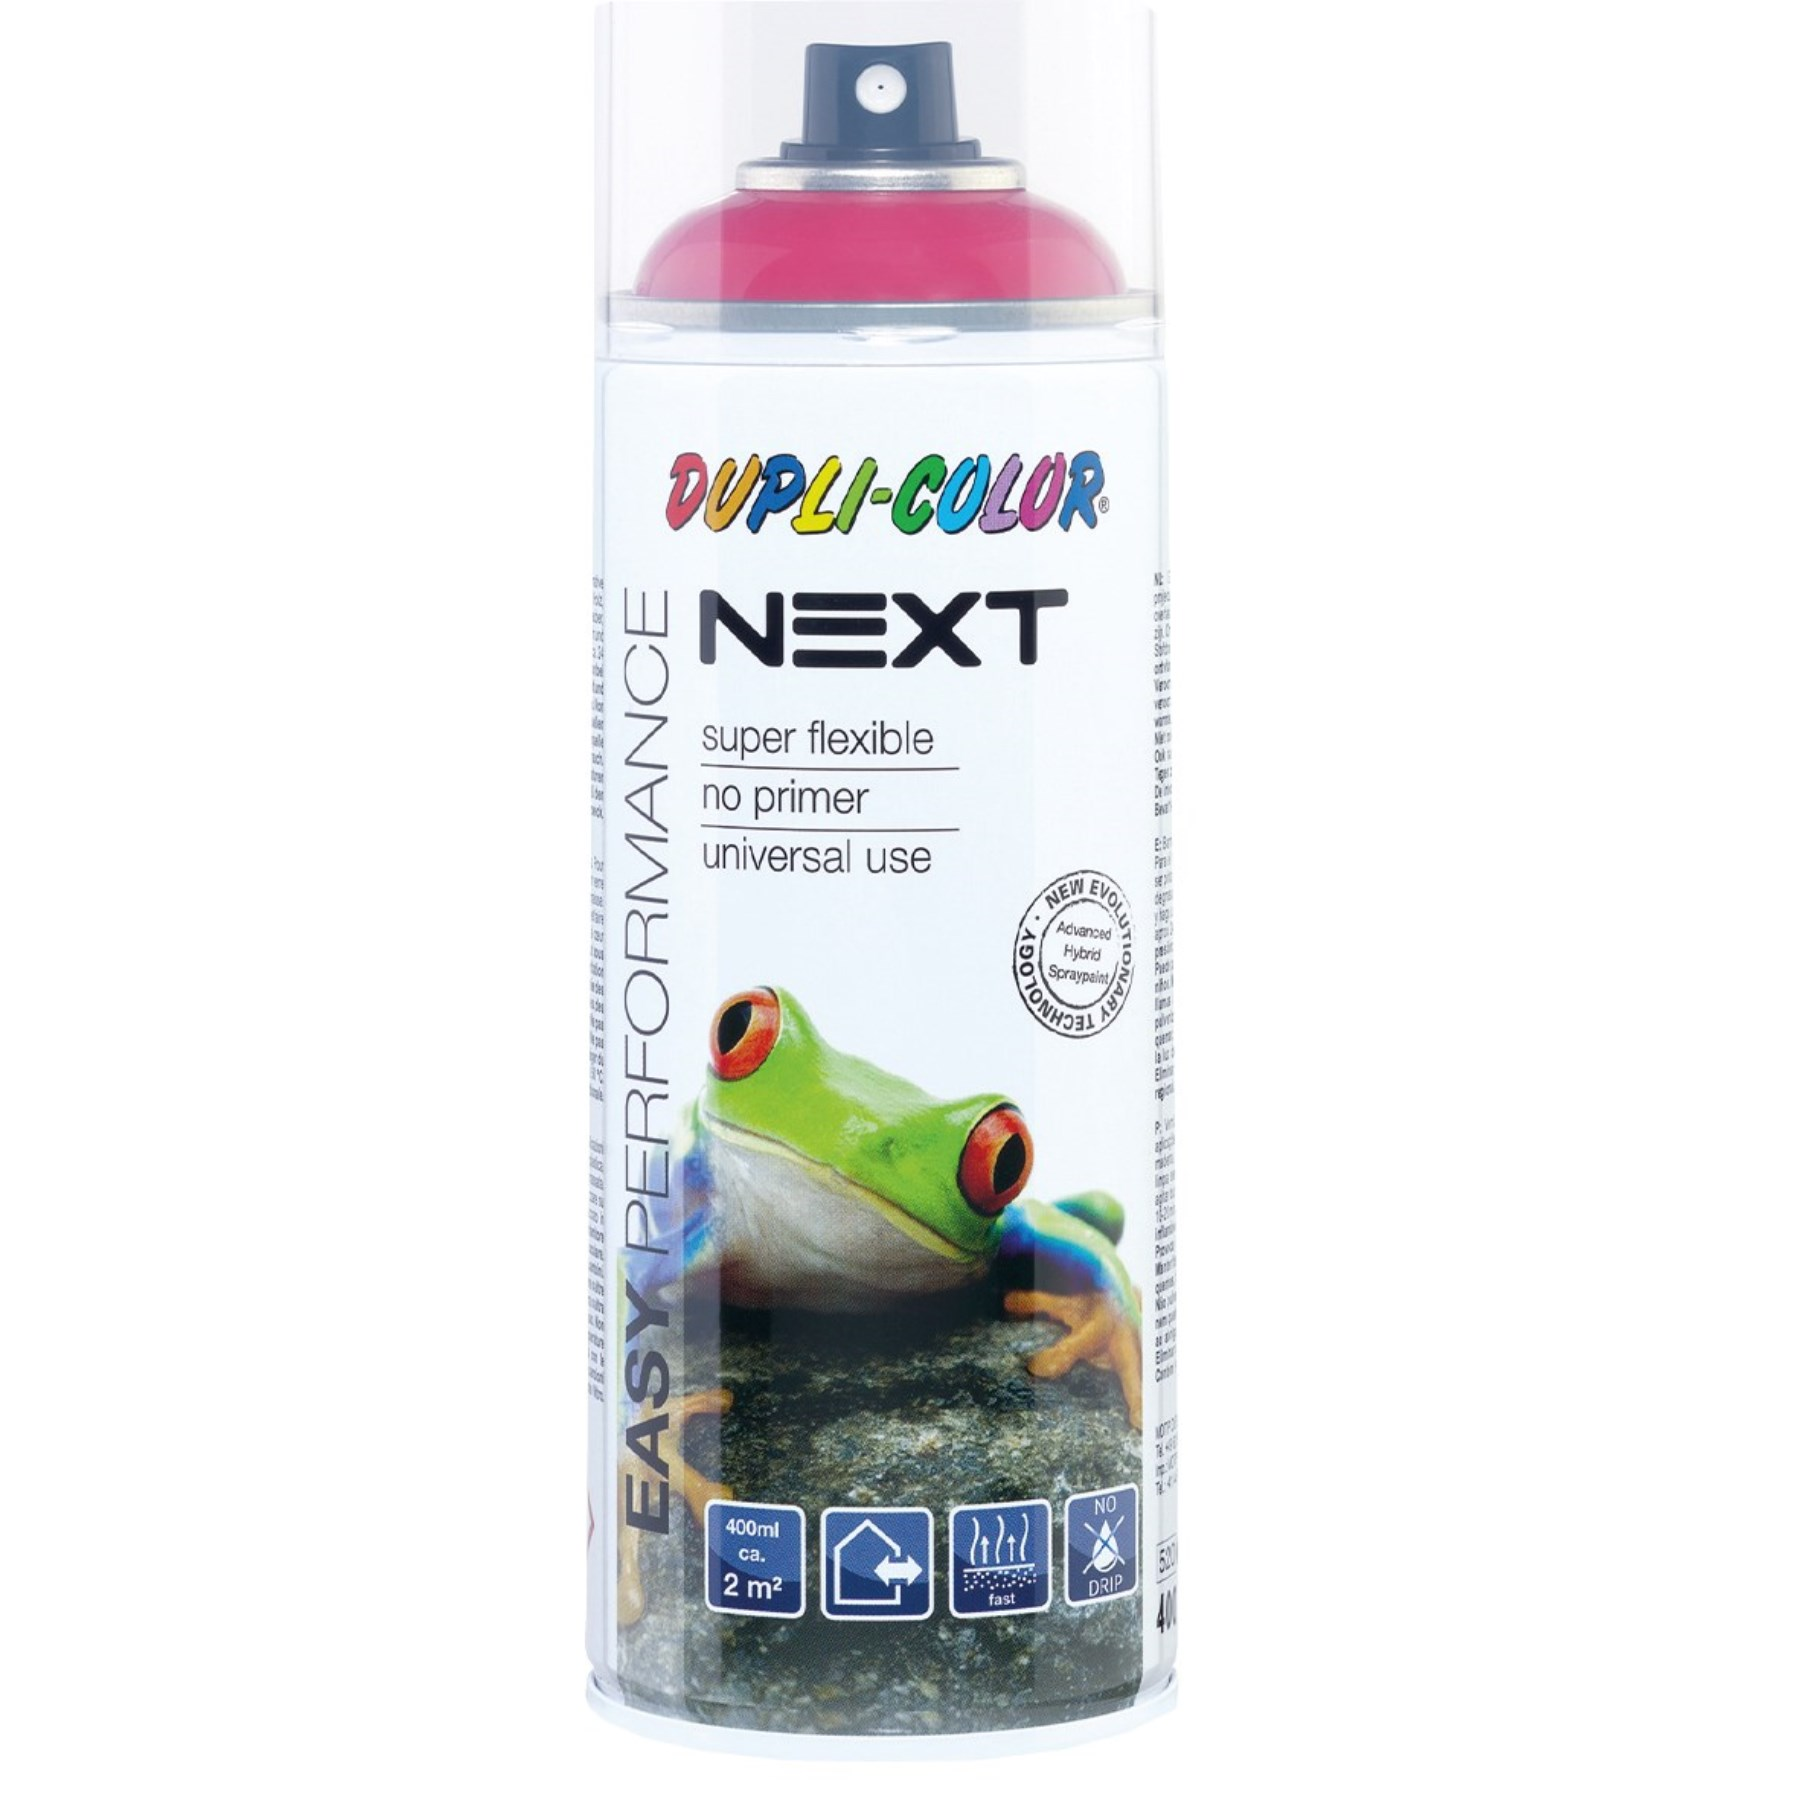 1253838 - NEXT Lackspray RAL 5010 400ml enzianblau glz.